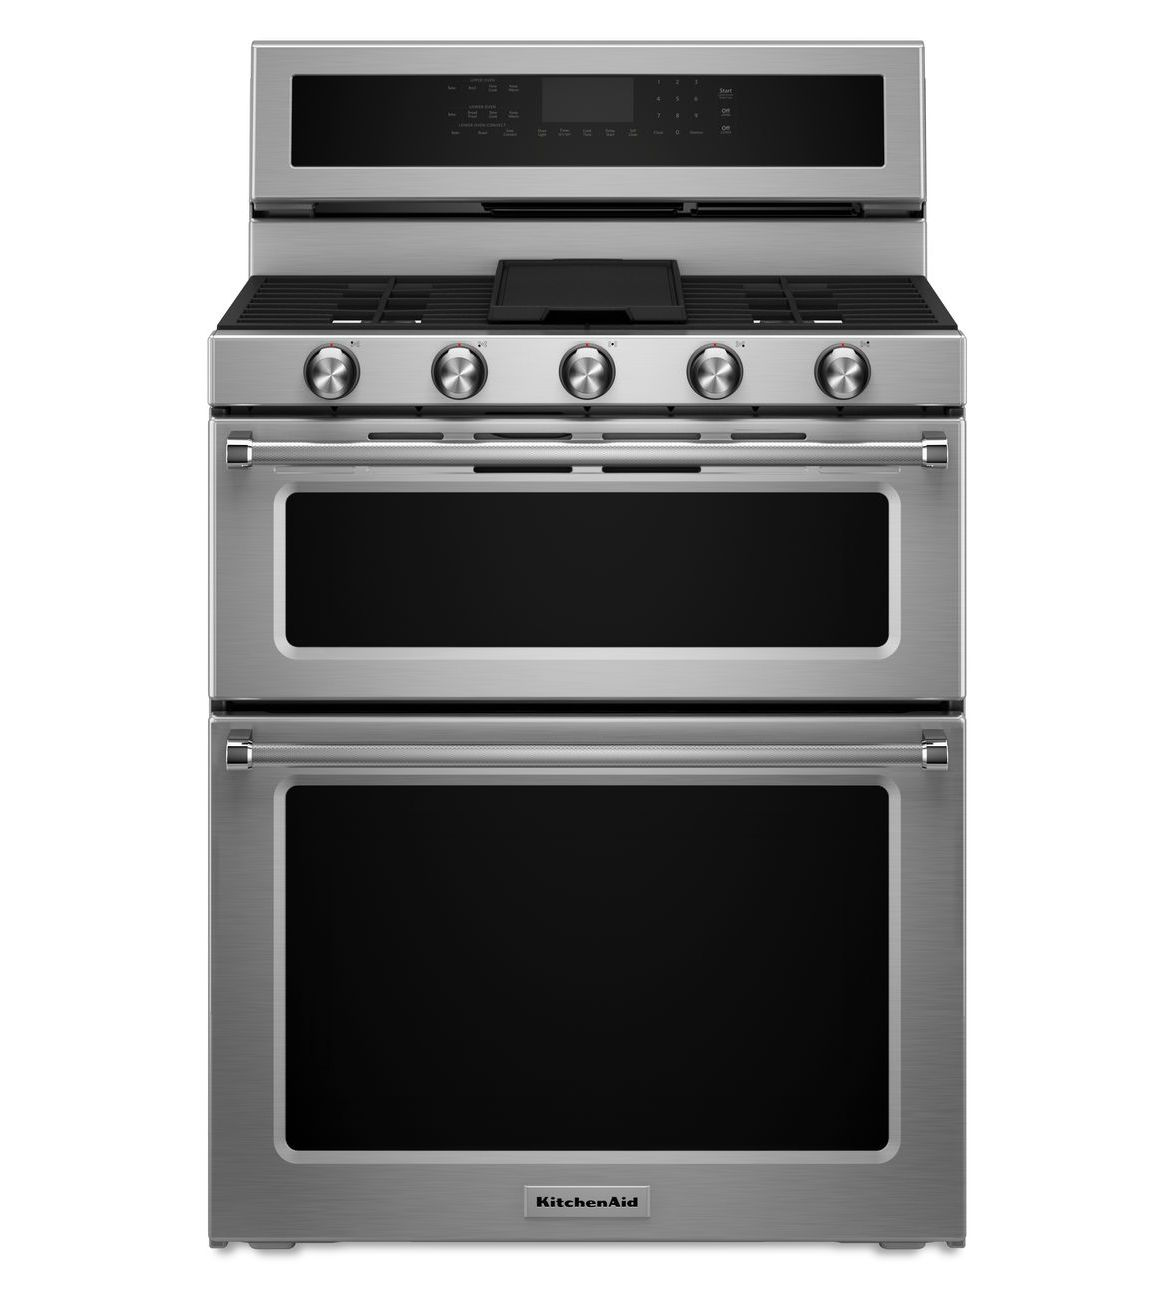 Astonishing Stainless Steel 30 Inch 5 Burner Dual Fuel Double Oven Download Free Architecture Designs Scobabritishbridgeorg